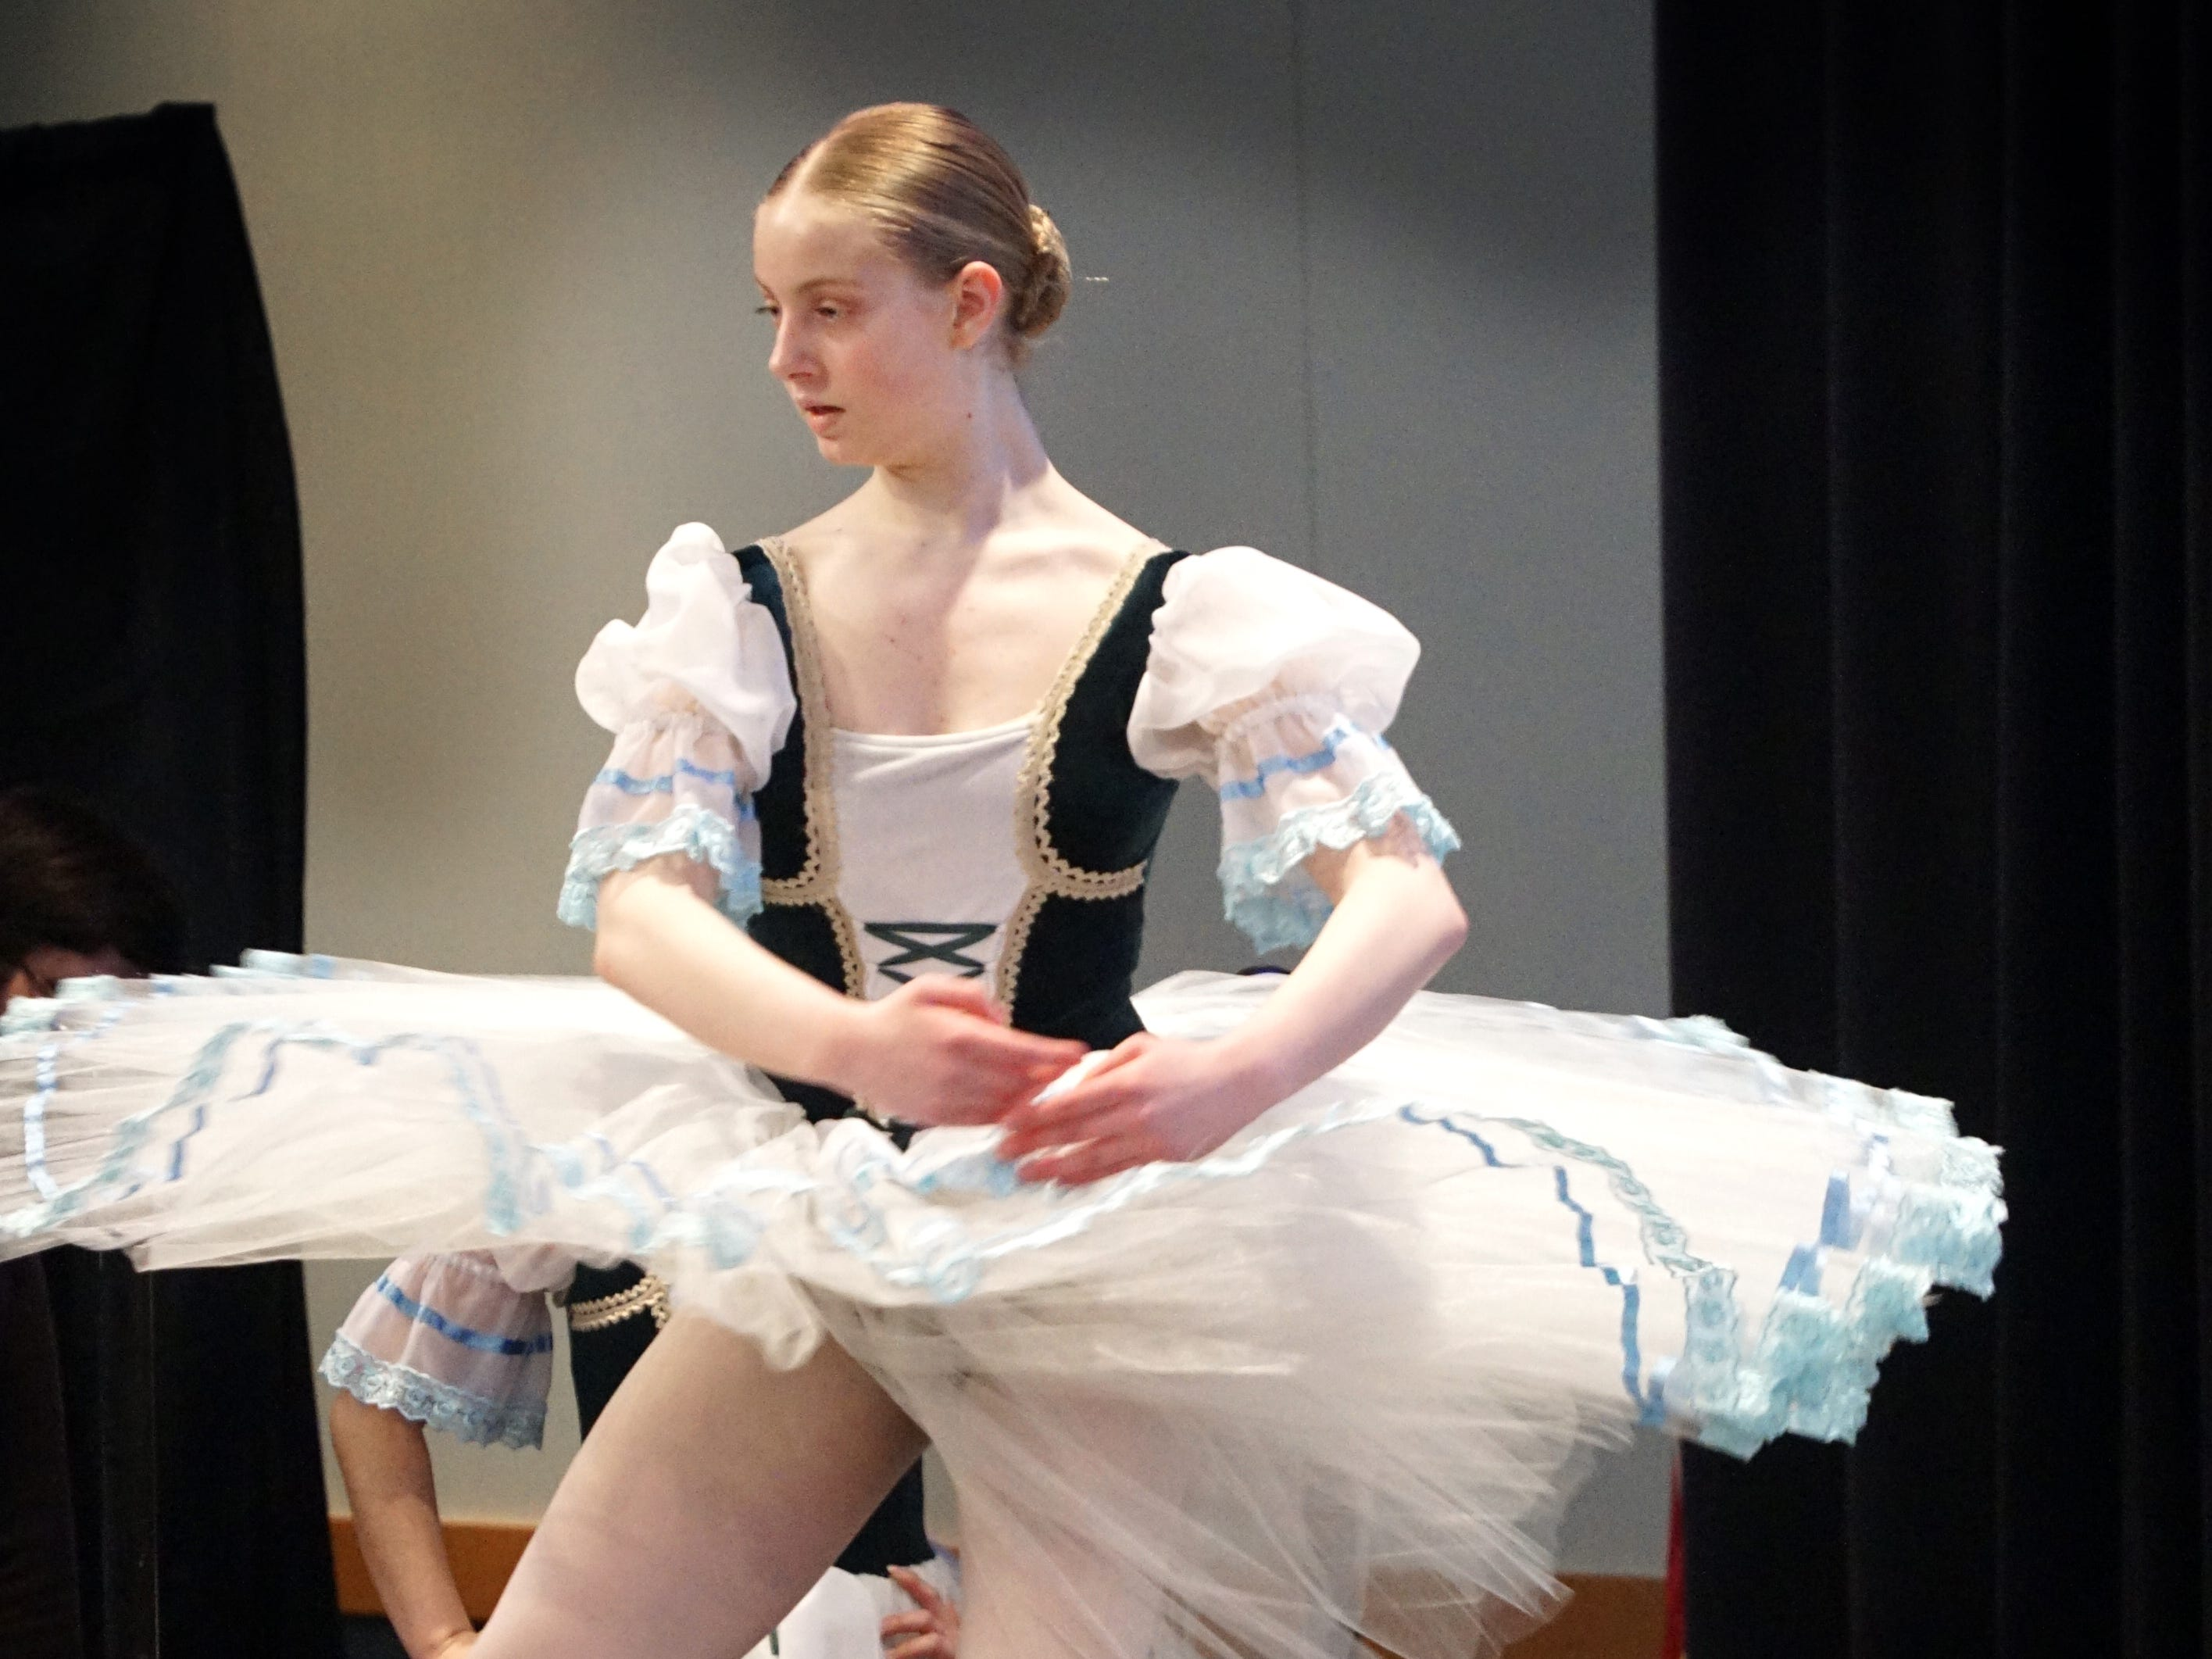 Sarah Davidson, a dancer with the Academy of Russian Classical Ballet, dances at Schoolcraft College's Multicultural Fair on March 28. The fair, which ran from 10 a.m.-3 p.m. in the DiPonio Room, featured information booths, food samples and demonstrations from 24 different countries and cultures and featured musical and dance from 11 different groups including the Mariach Jalisco Band, the O'Hare Irish Step Dancers, and the Marcus Garvey Academy African Drum and Dance Ensemble.